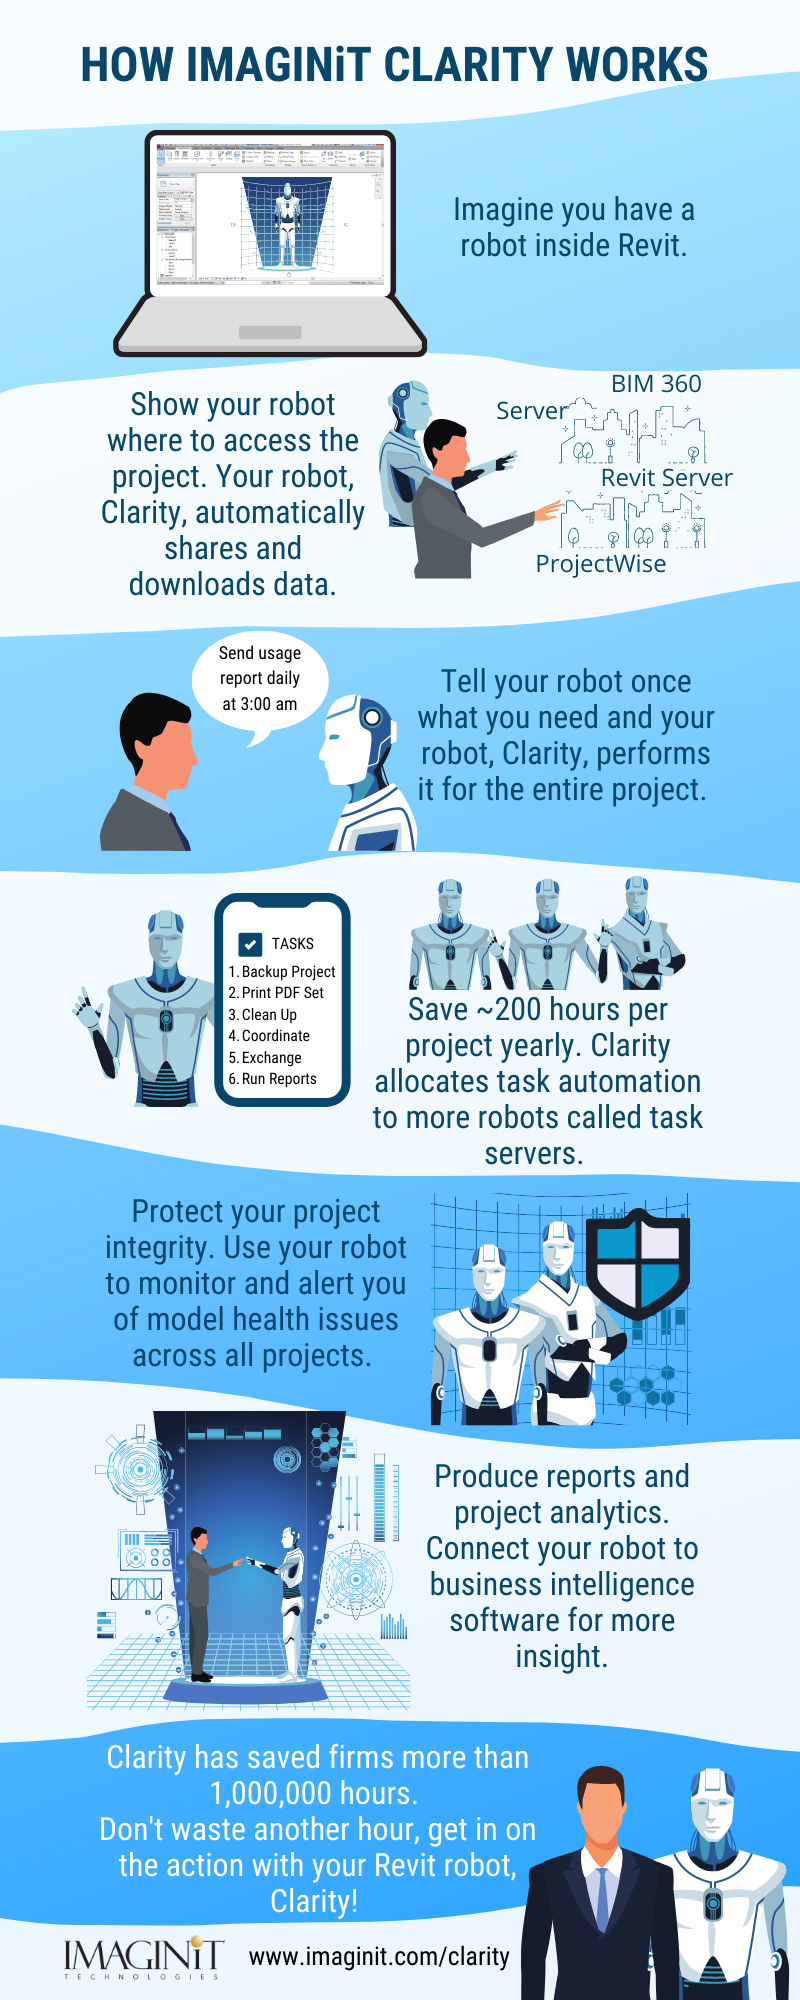 [Infographic] How Does IMAGINiT Clarity Work?